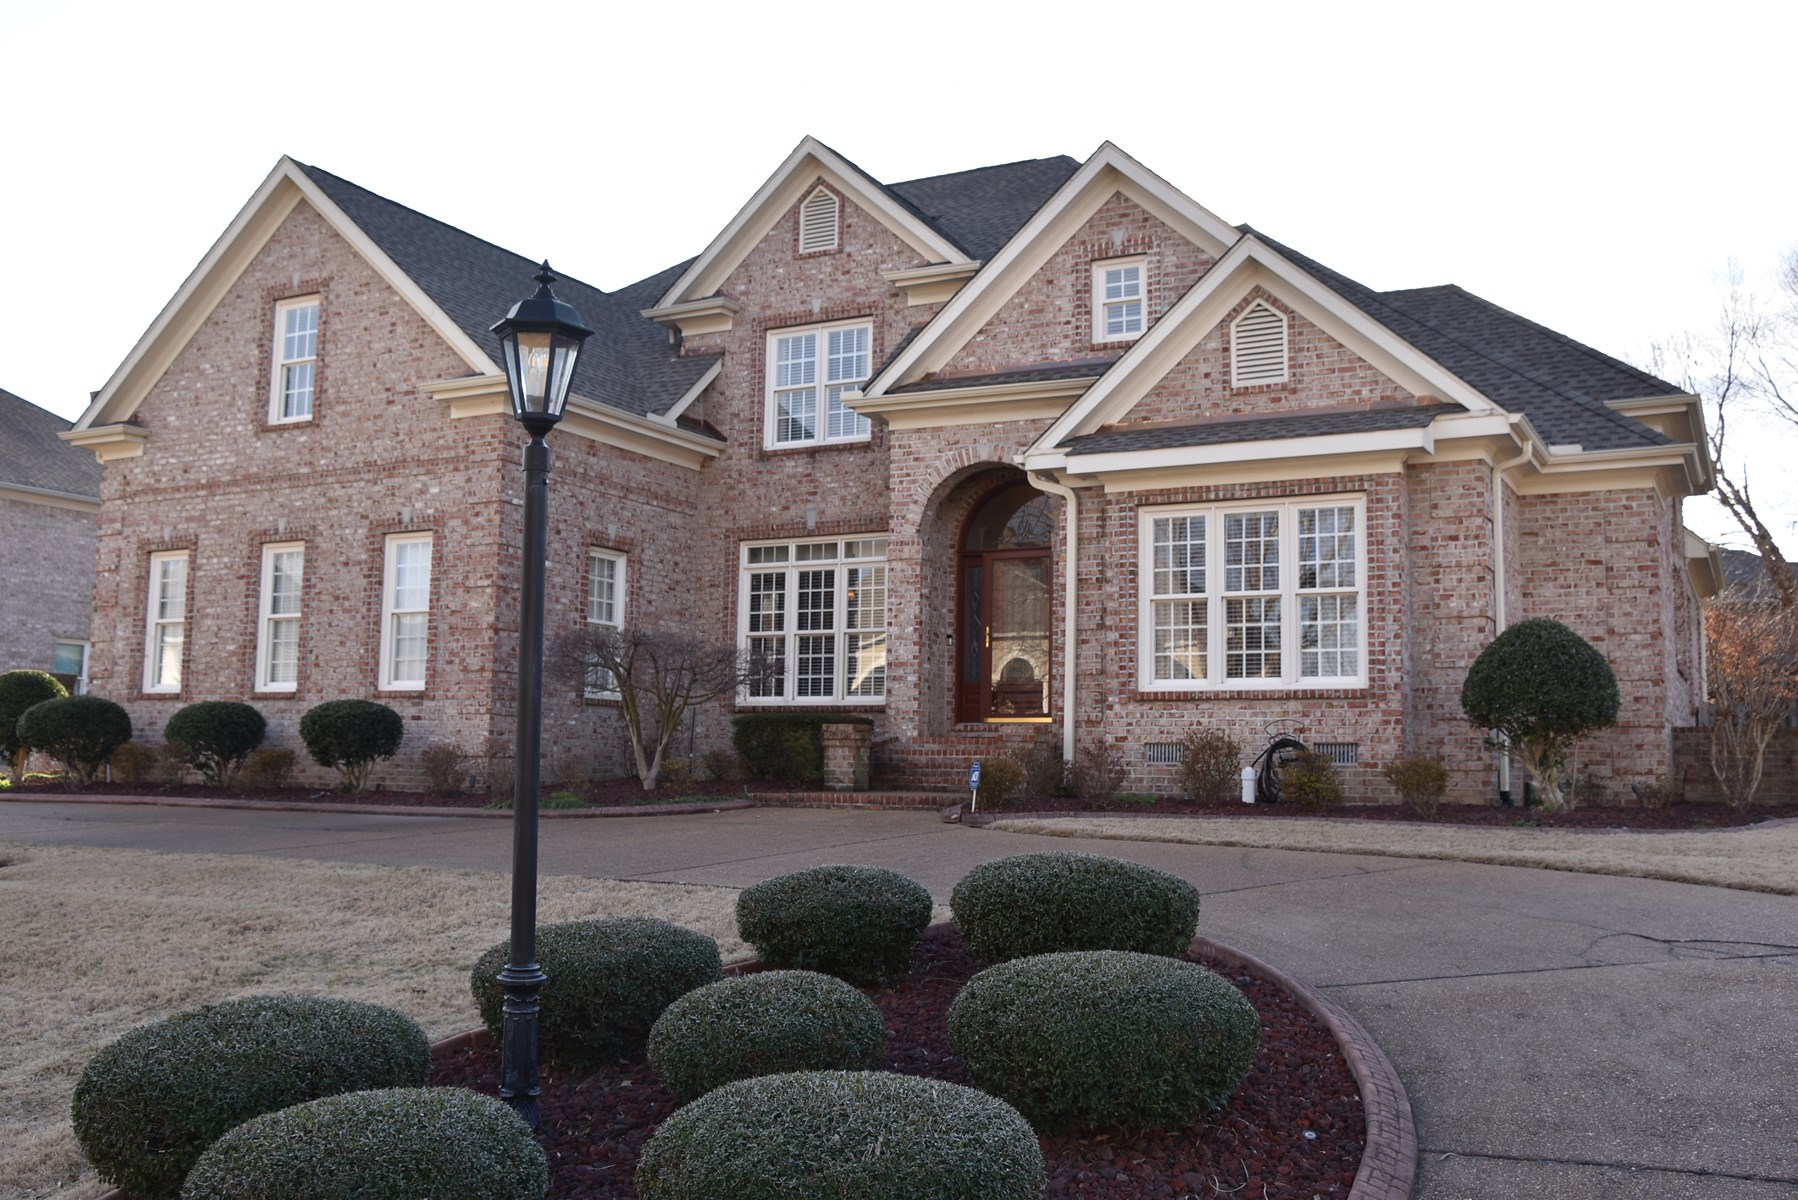 5 BR 3 BA Beautiful Brick with 2 Story & Outdoor Kitchen